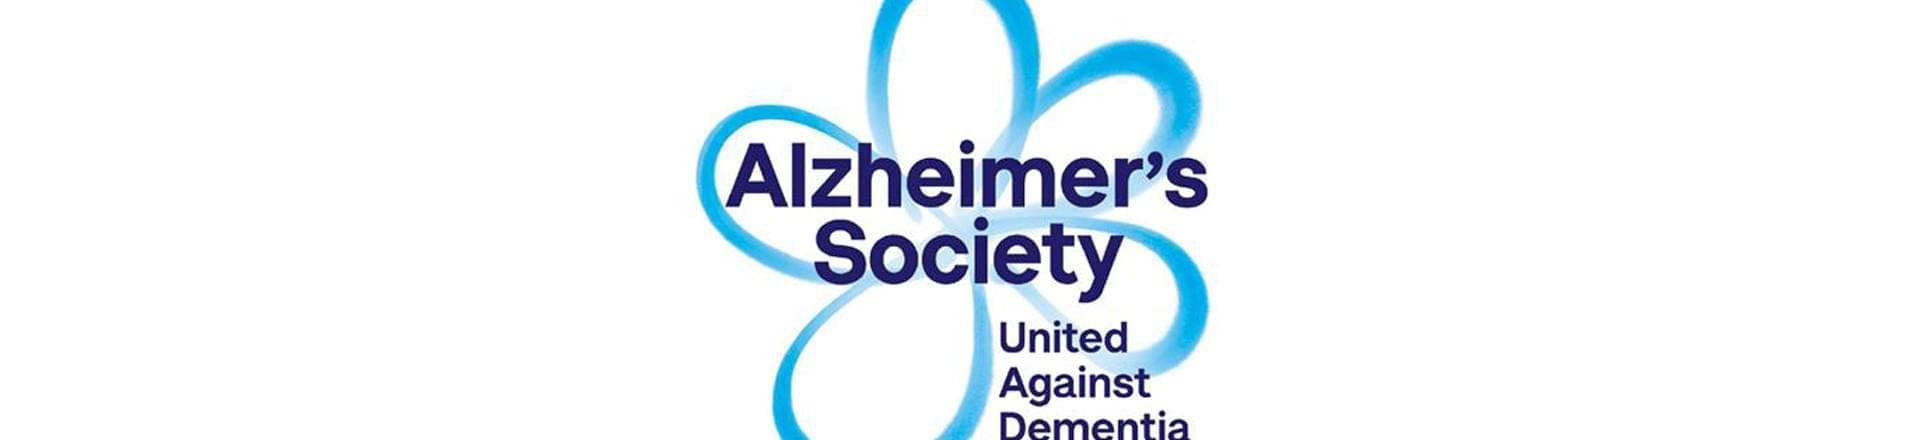 the Alzheimer's Society logo with the text 'United Against Dementia'